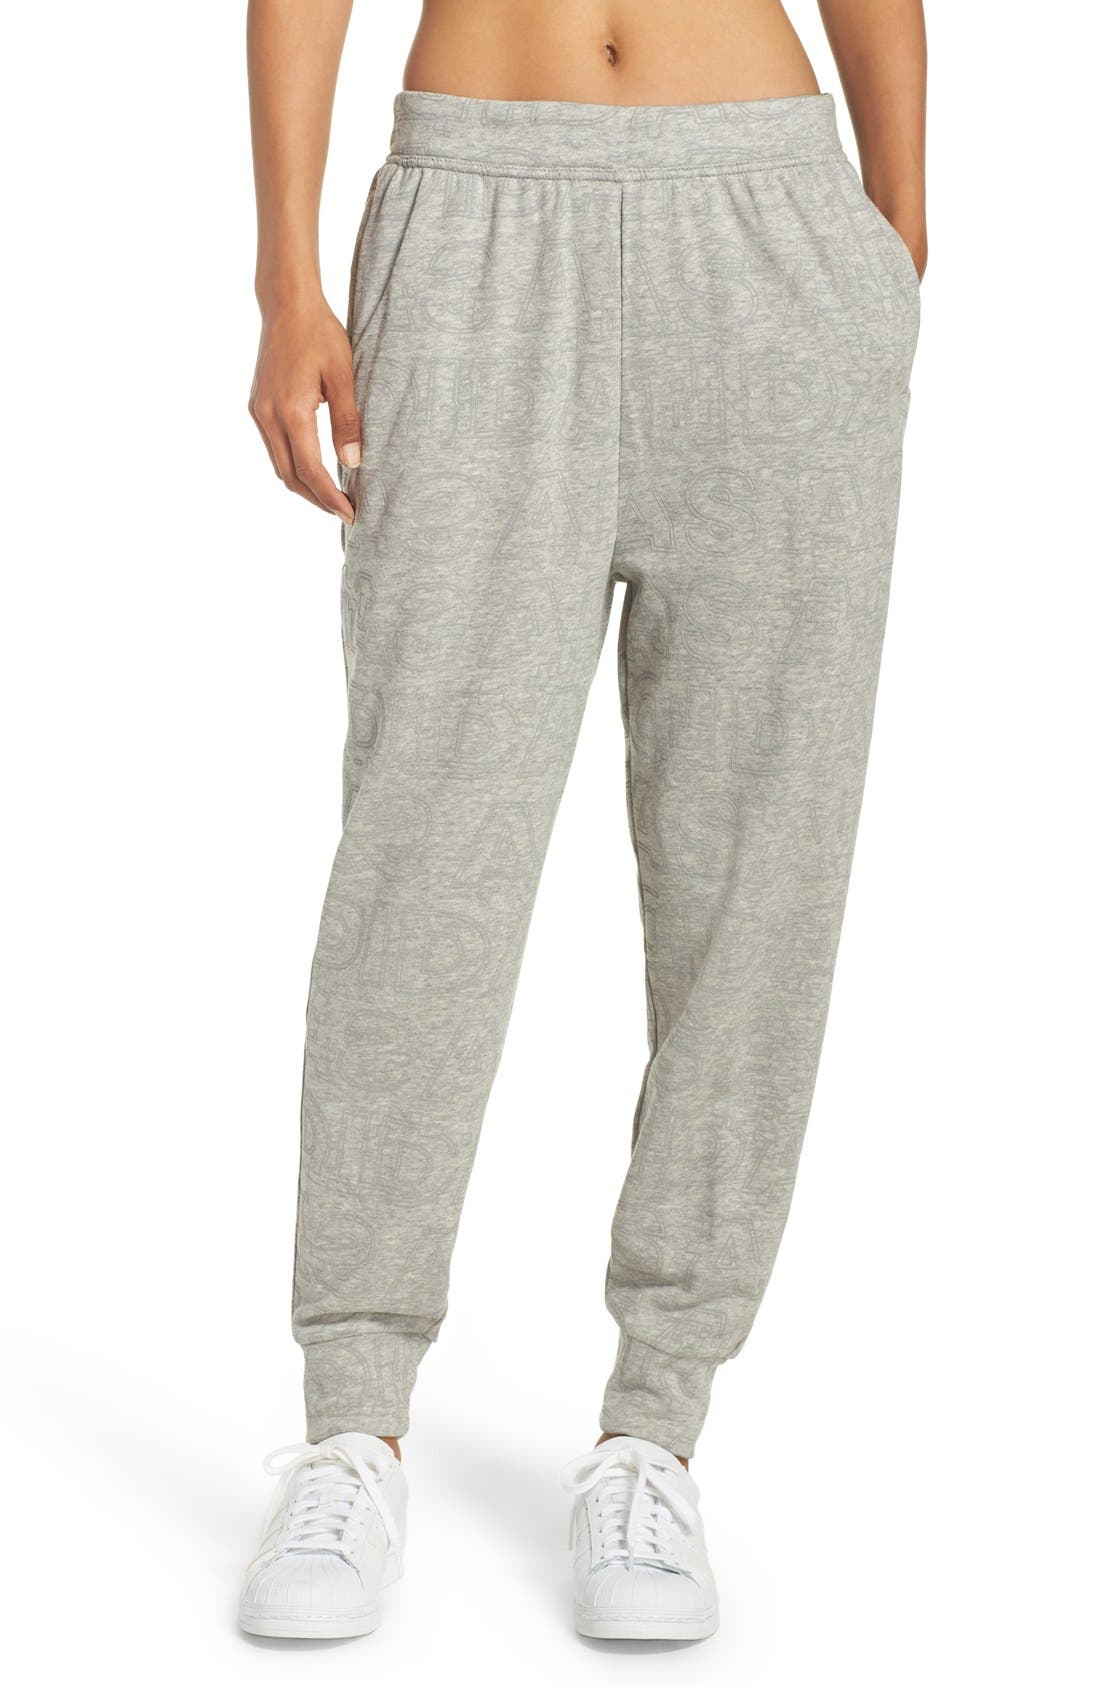 ADIDAS Boyfriend Lounge Pants, Main, color, 035